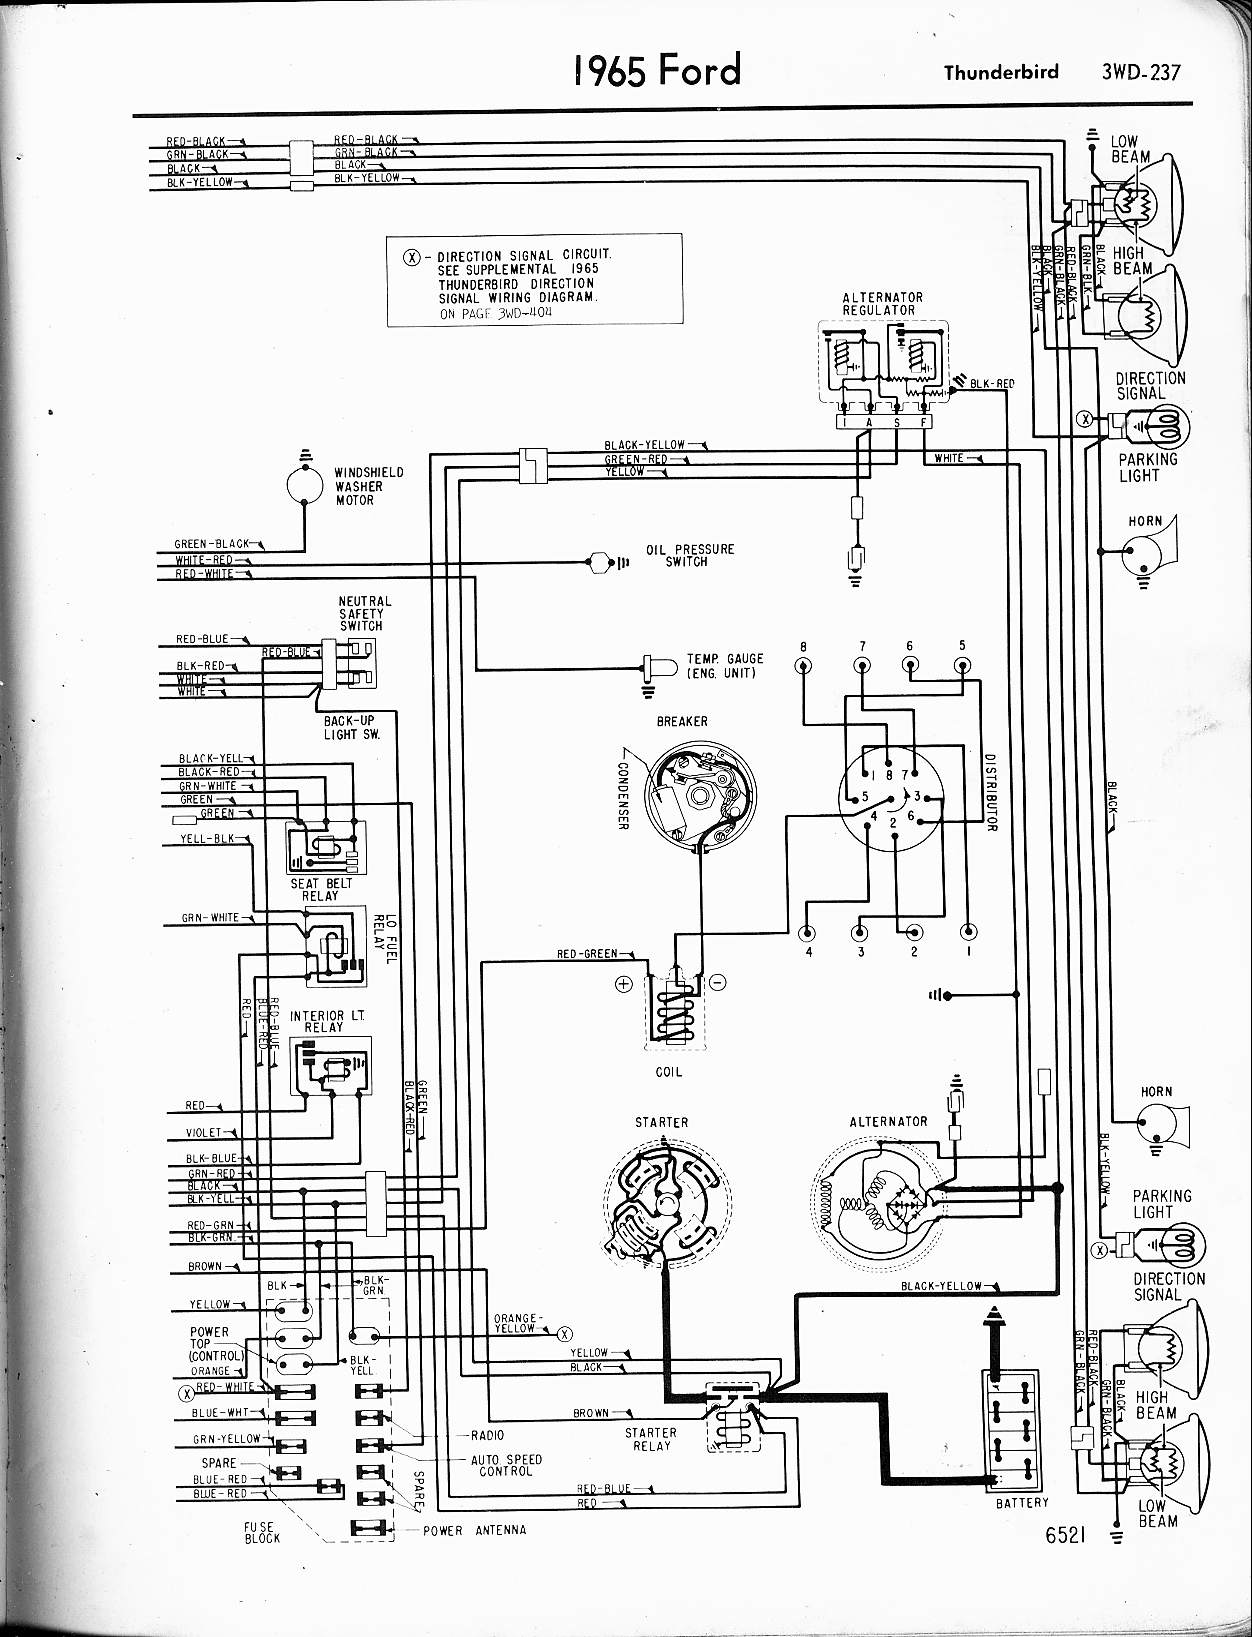 MWire5765 237 1964 thunderbird wiring diagram 1964 thunderbird stereo wiring 1965 ford alternator wiring diagram at eliteediting.co